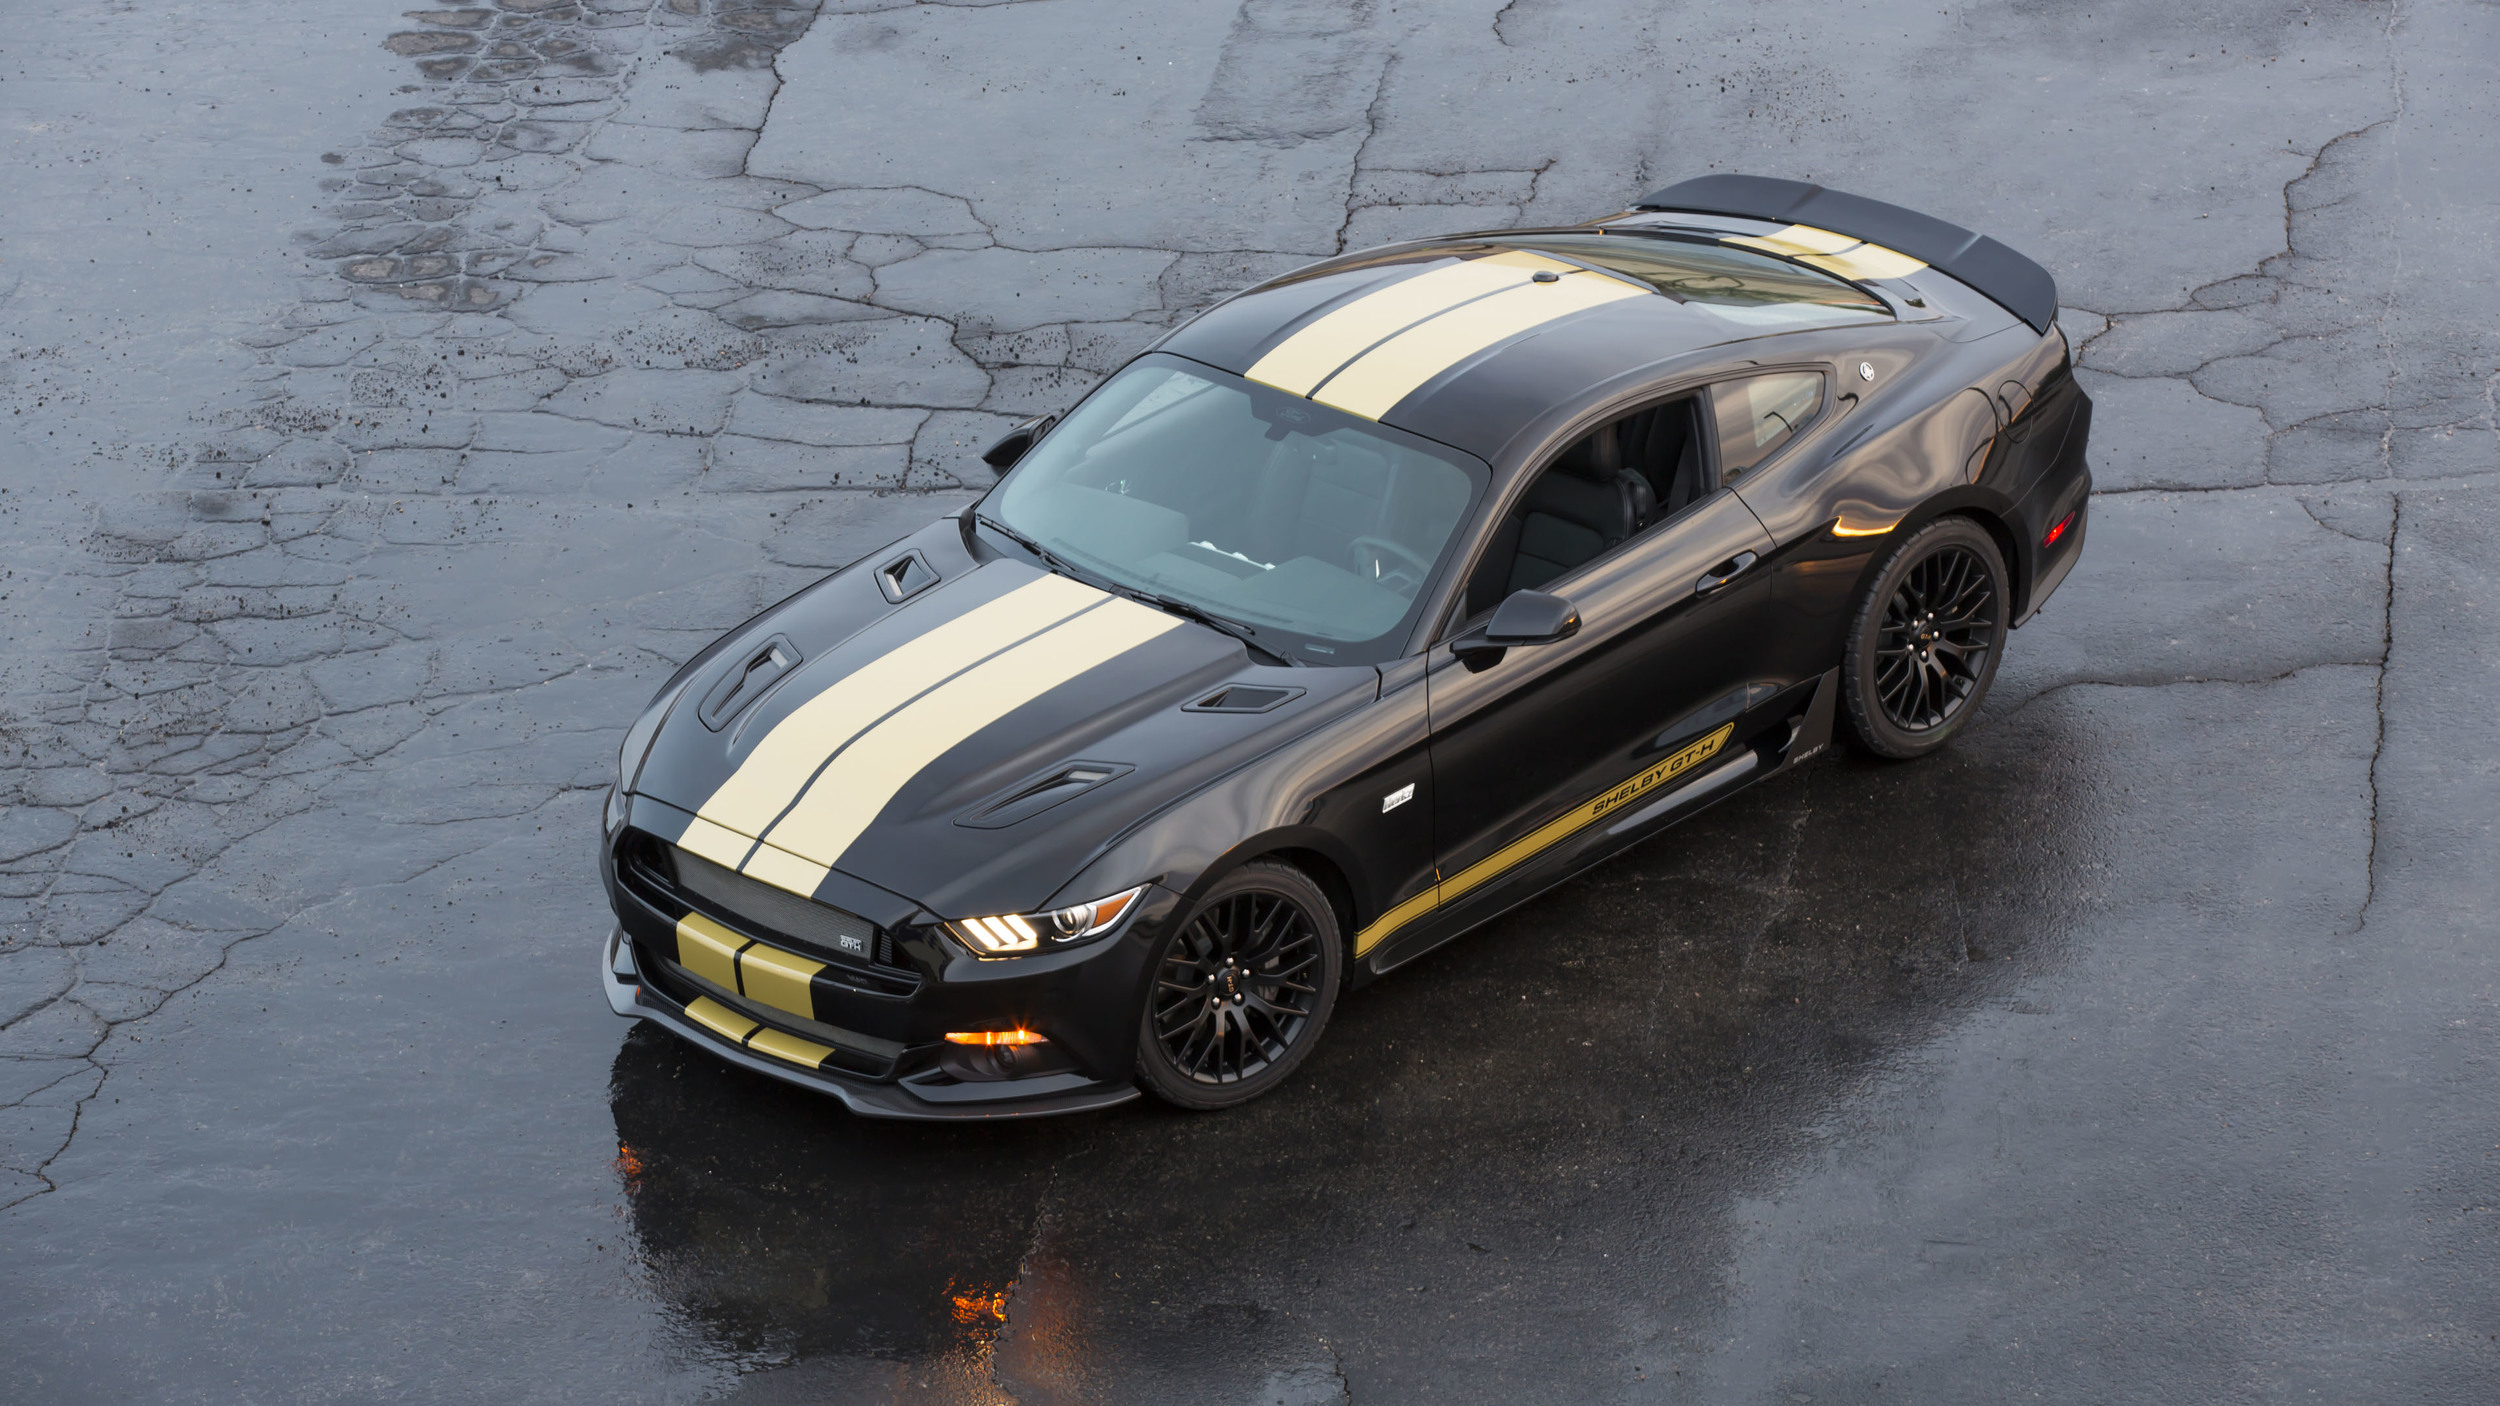 Thread shelby american hertz launch the 2016 50th anniversary edition ford mustang shelby gt h